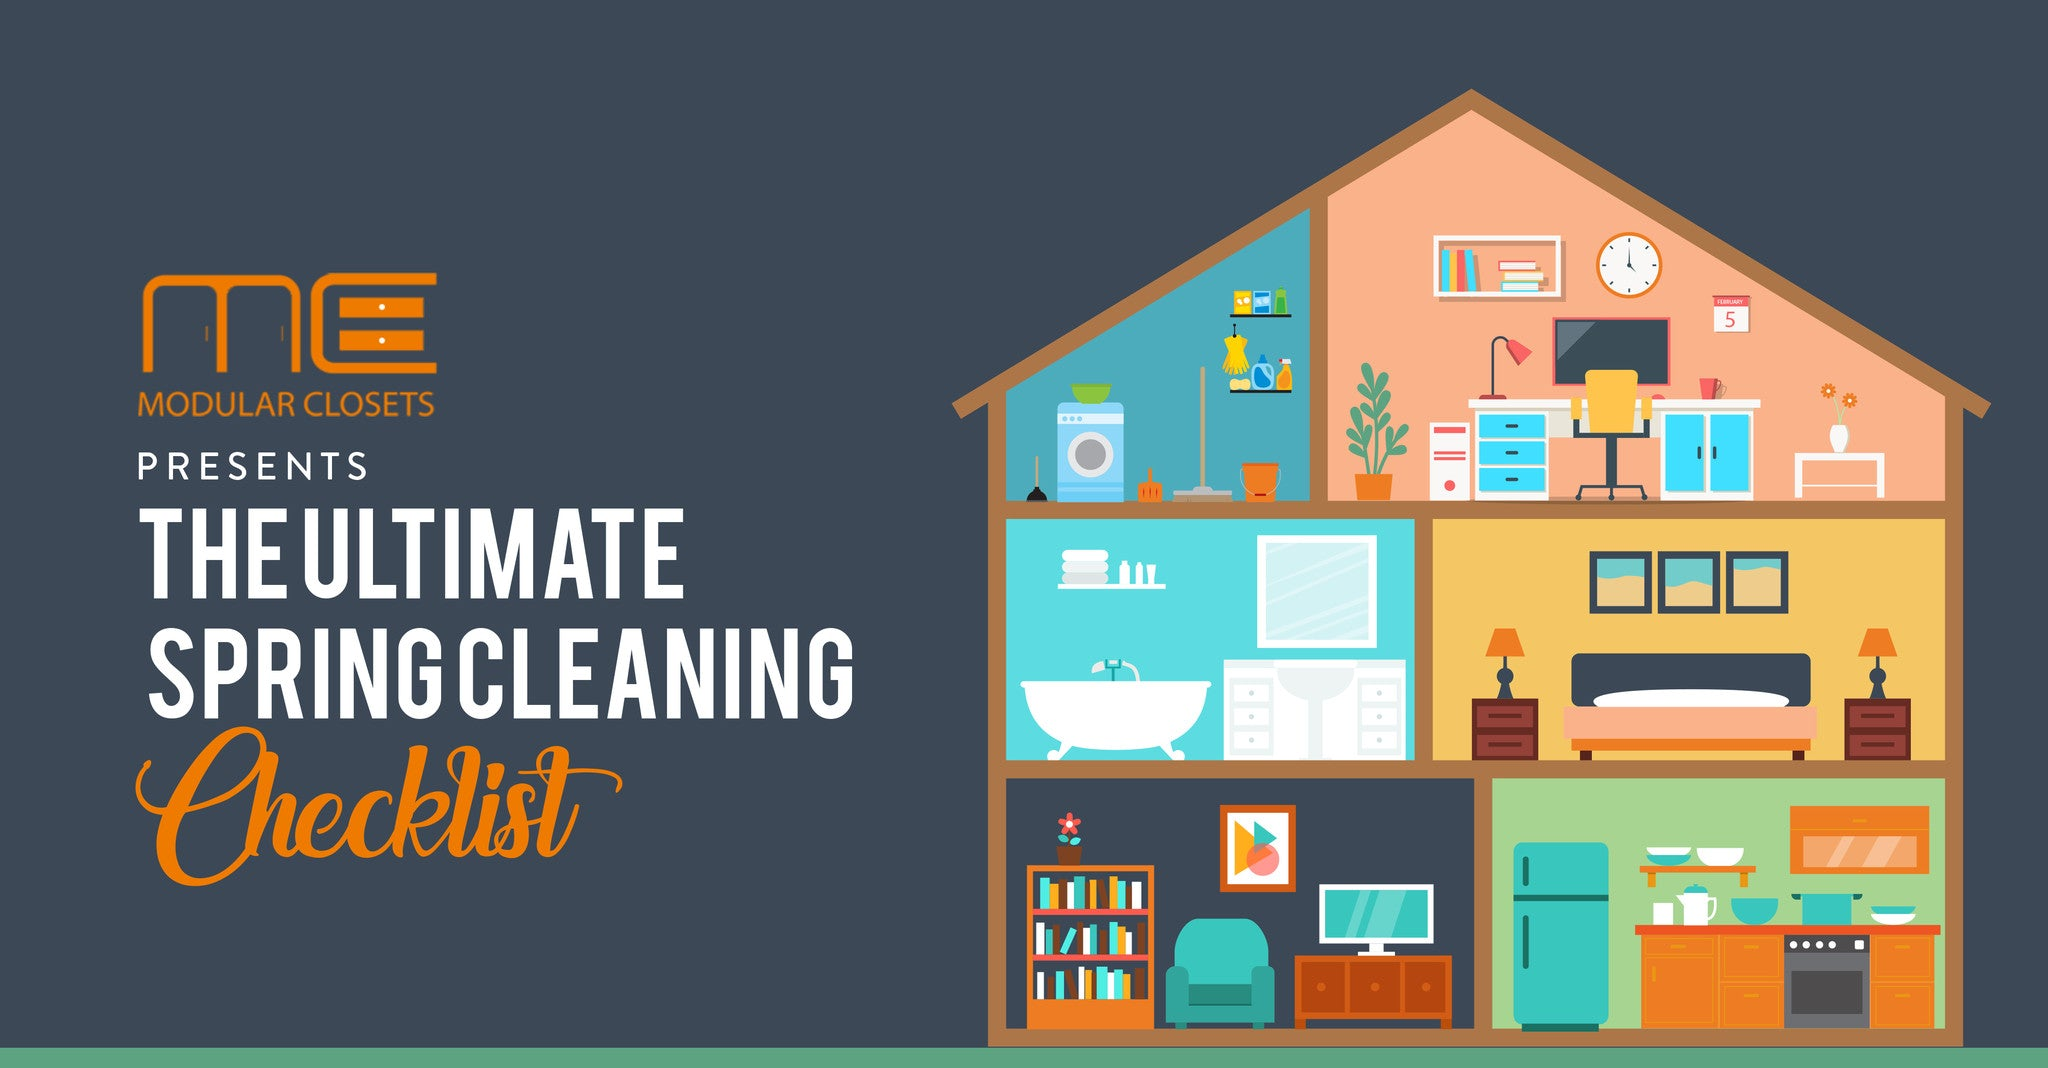 The Most Ultimate Spring Cleaning 2017 Checklist